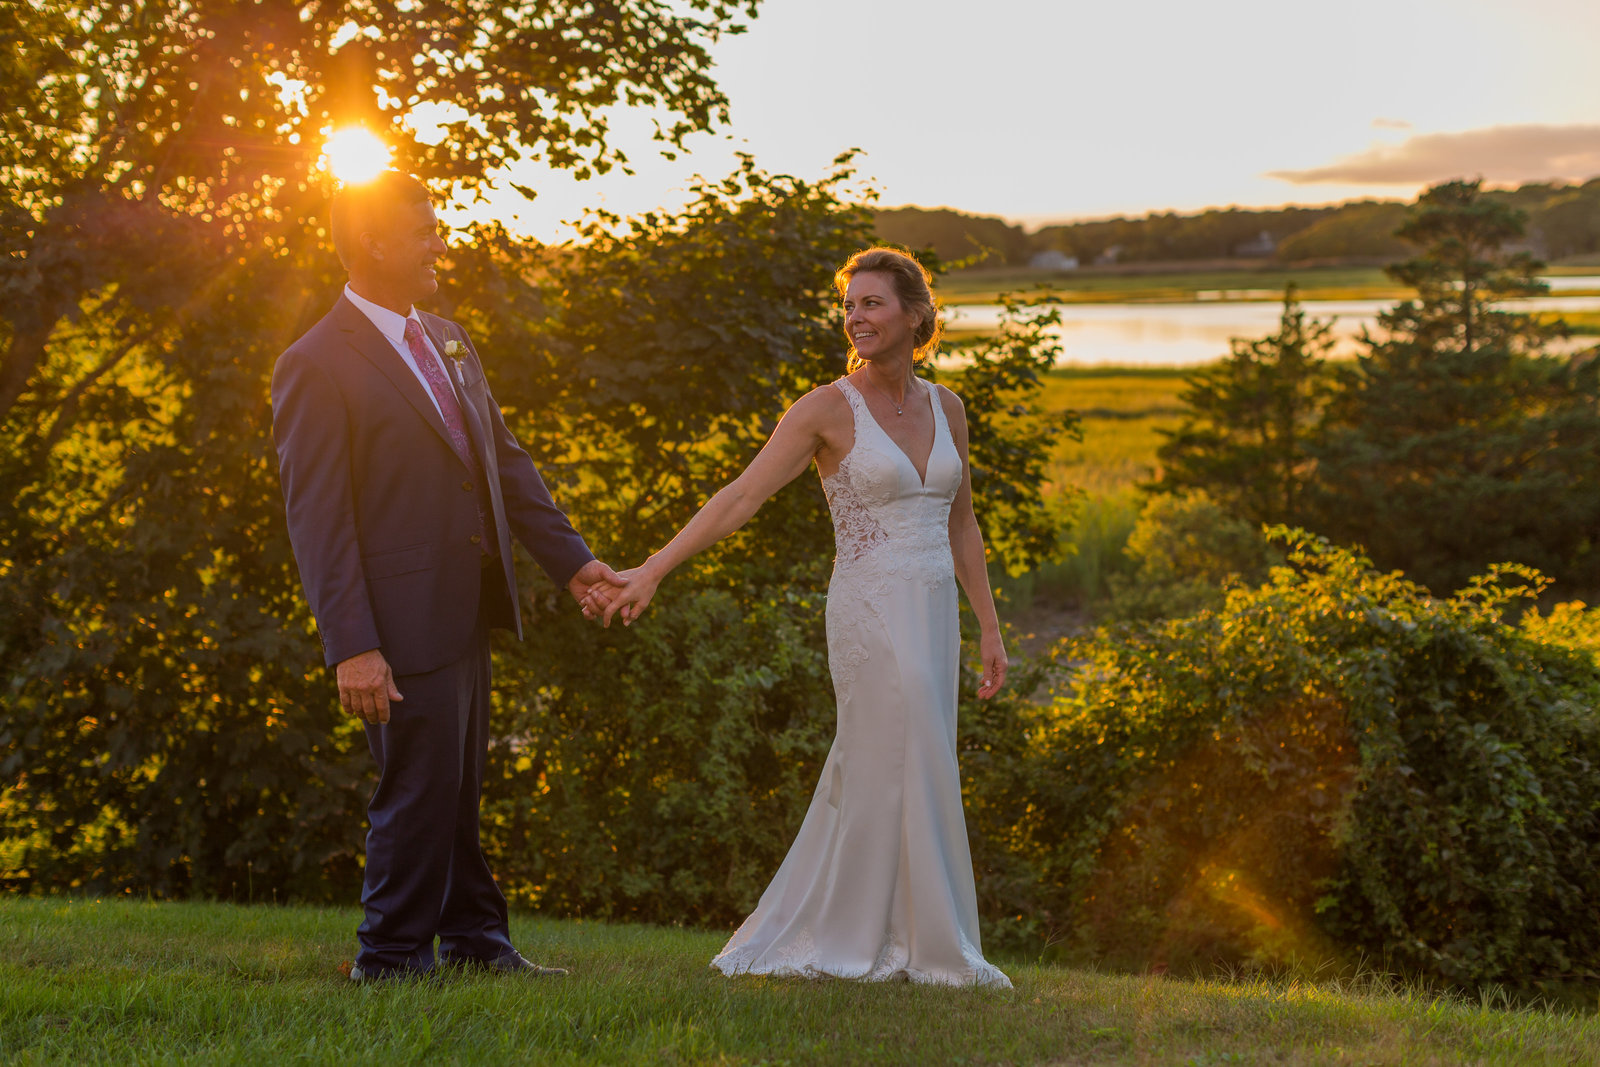 Craigville Village Wedding_Cape Cod Wedding Photographer_MichelleKayePhotography_a-0815